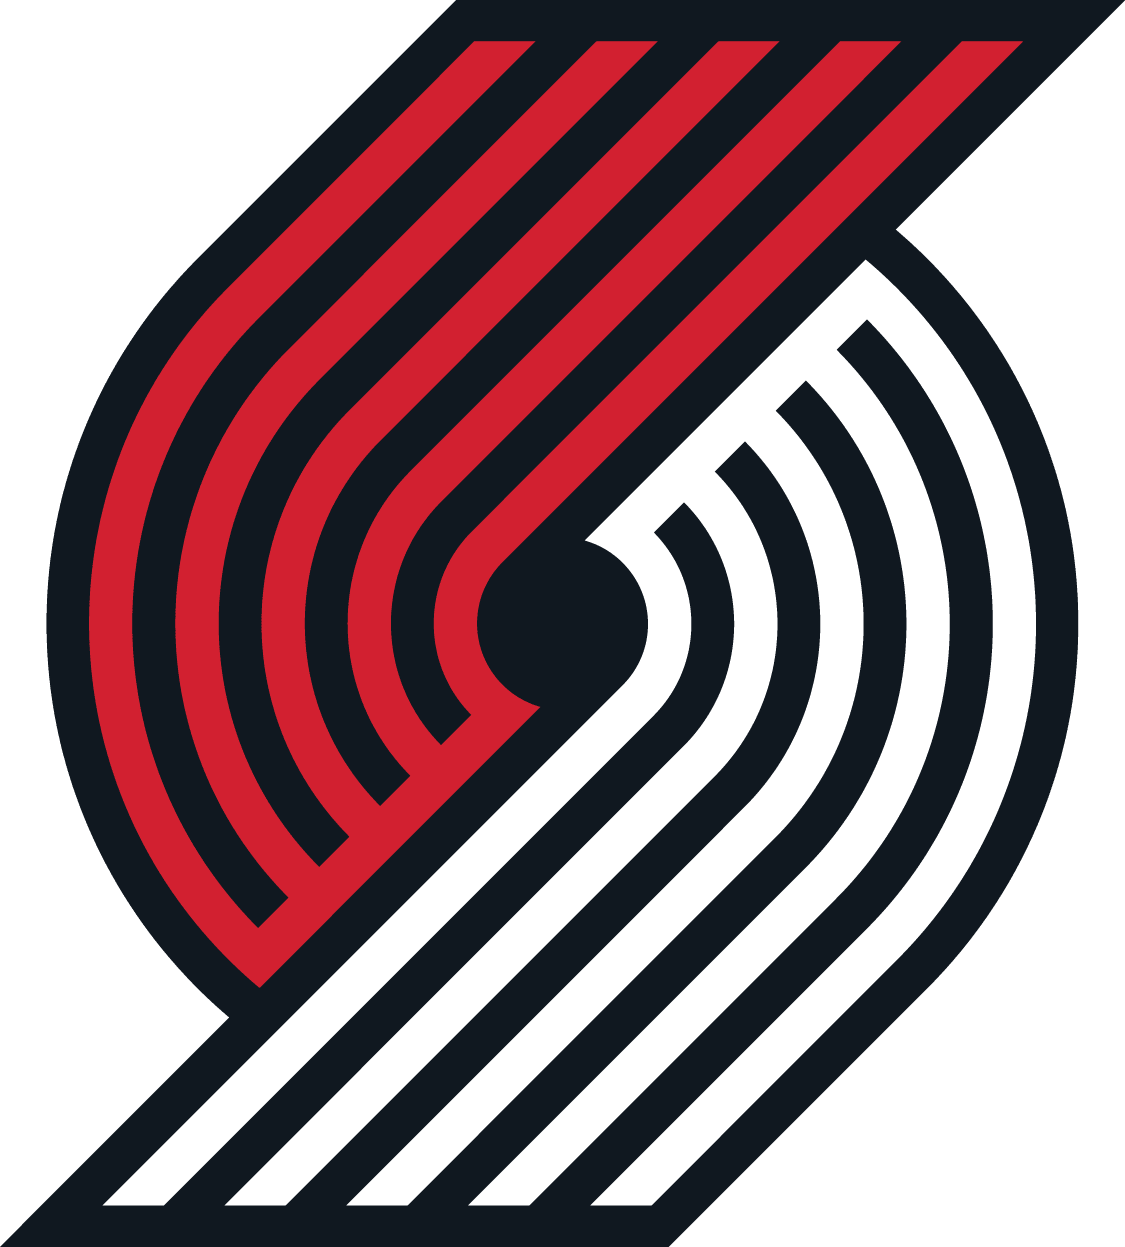 Logo for Portland Trail Blazers, Oregon professional men's basketball team.